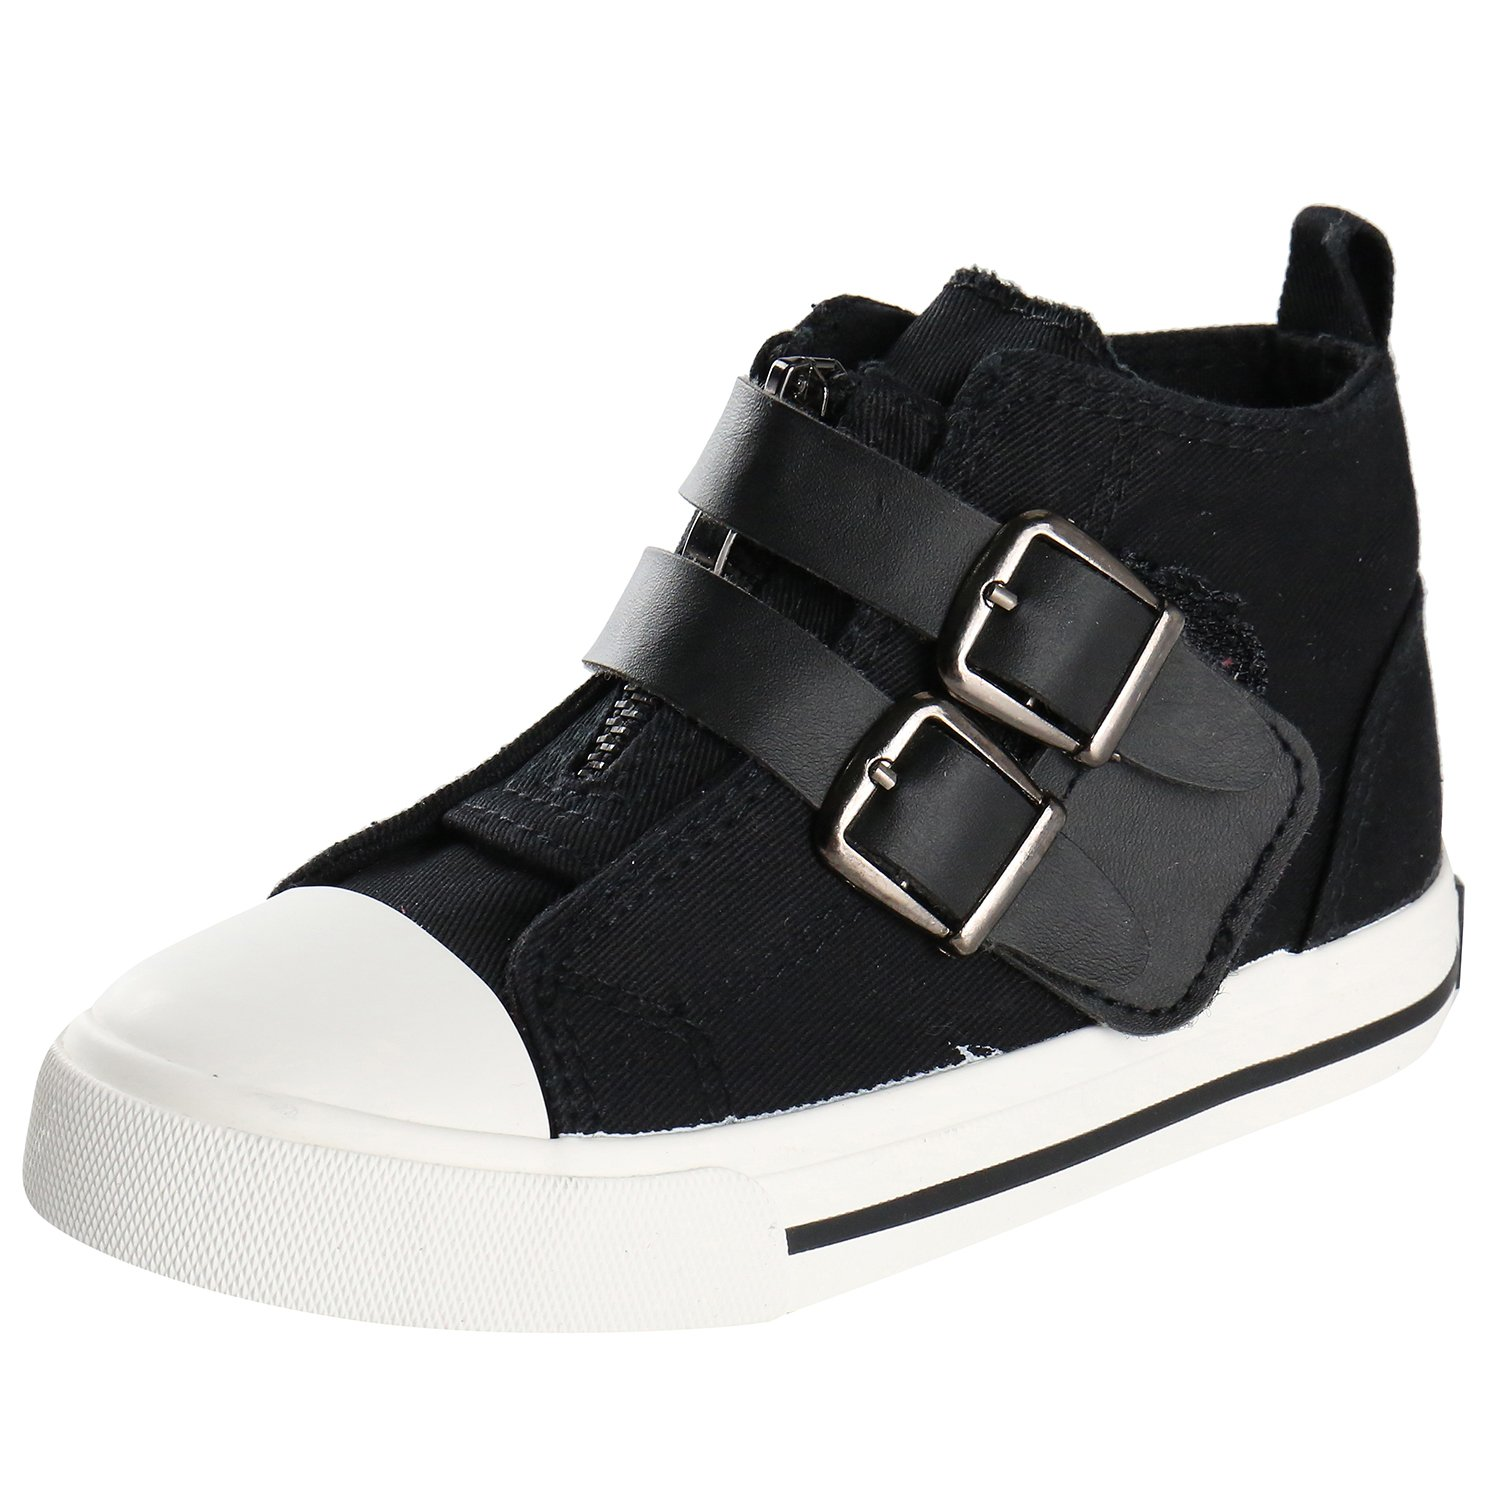 Boys Girls Unisex Infant Black Blue High Top Trainers Casual Shoes Size 3 7 8 9